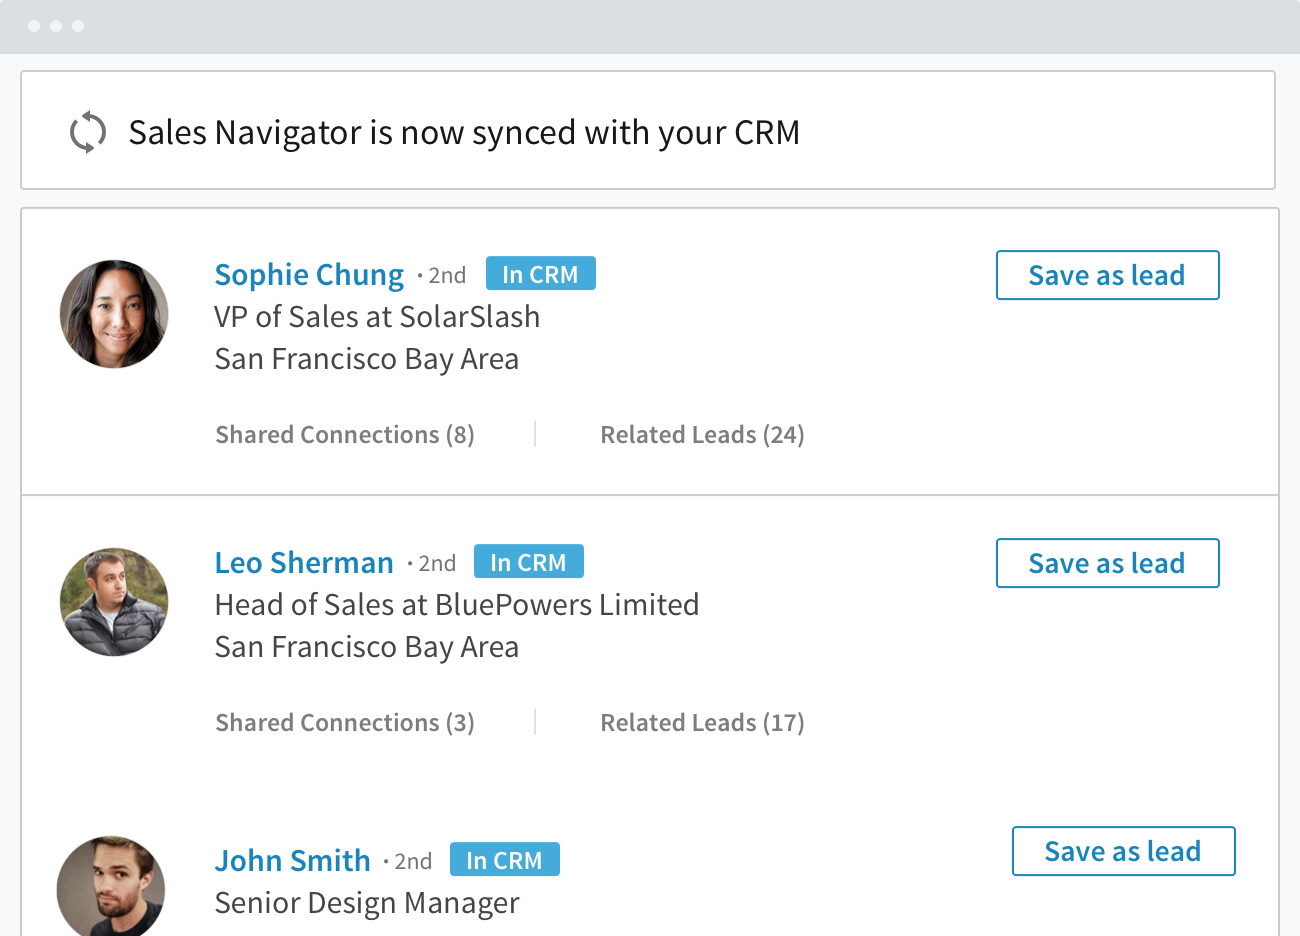 Results from LinkedIn's Sales Navigator CRM sync